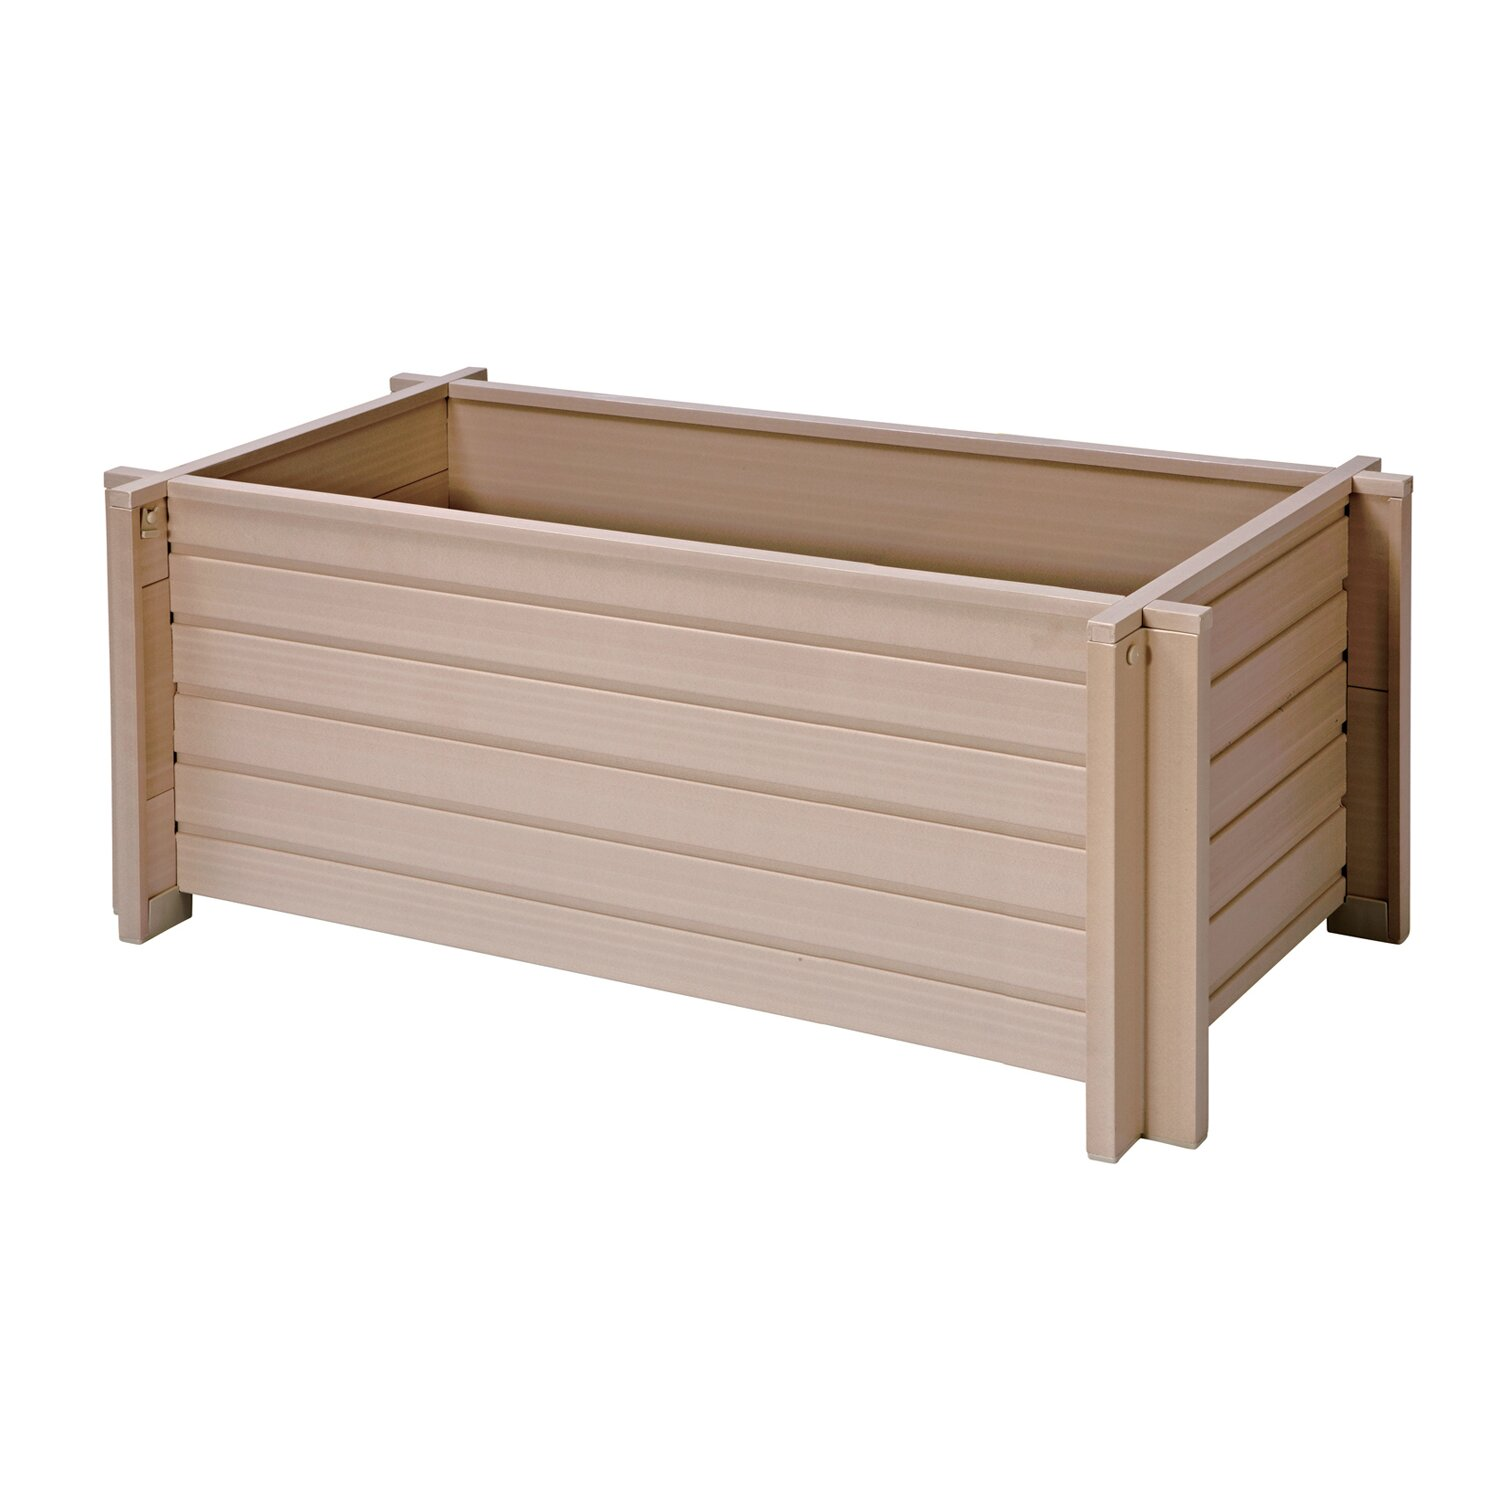 New age garden rectangular planter box reviews wayfair for Wayfair garden box